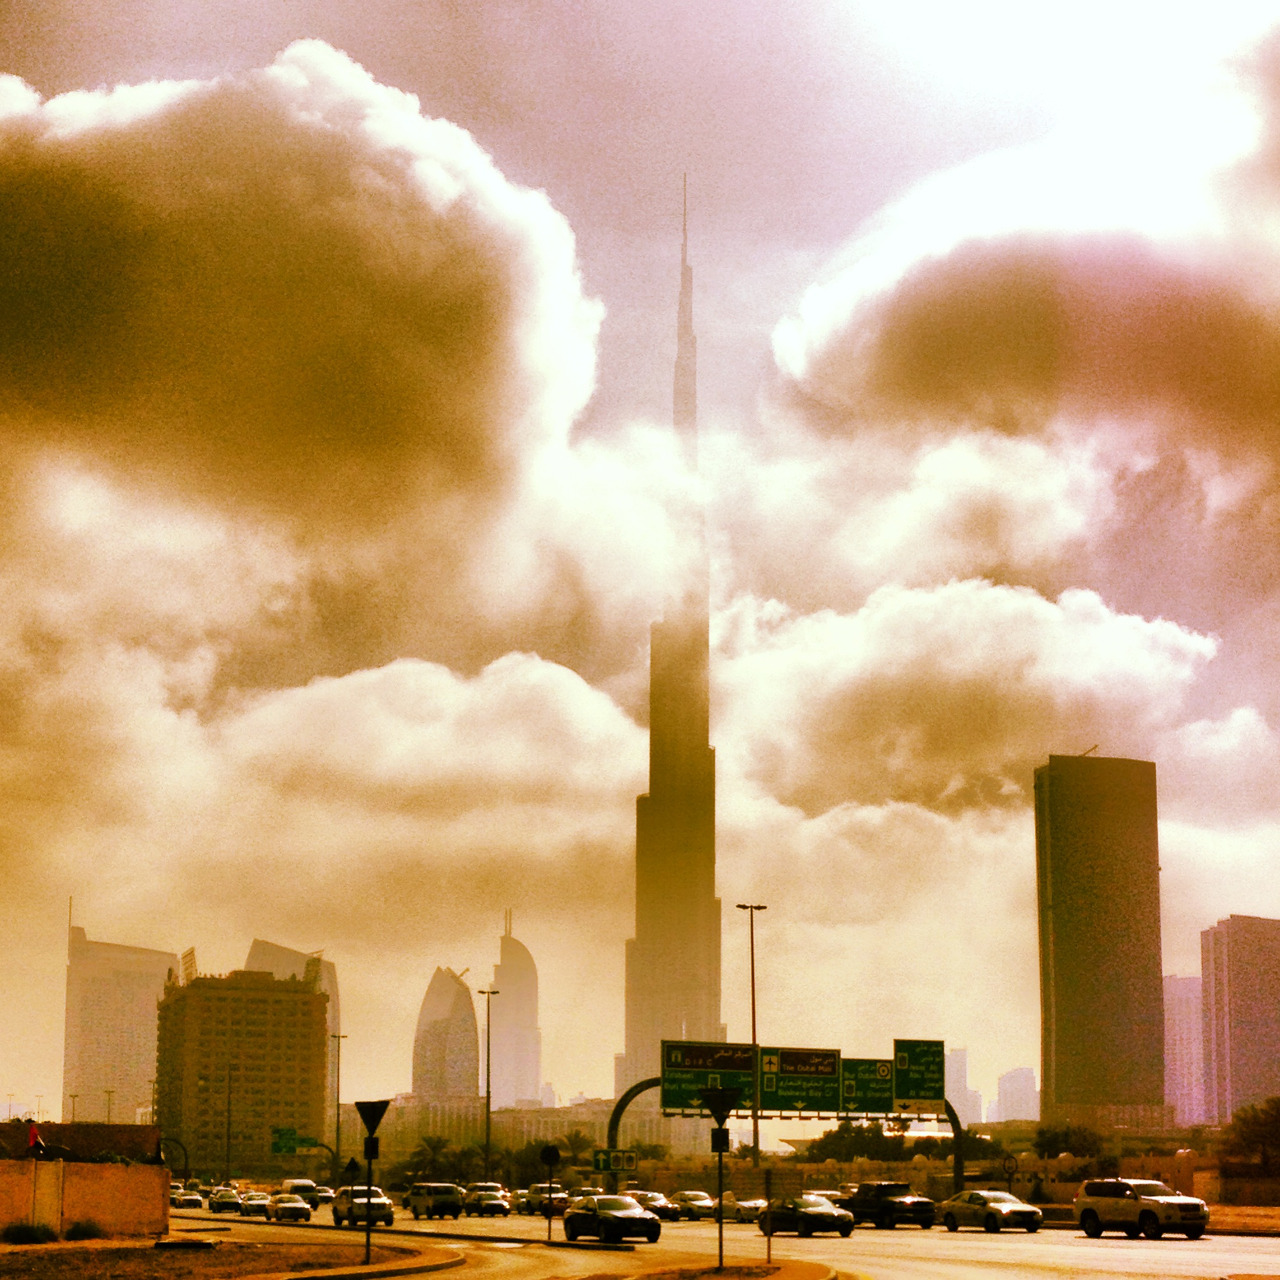 The Shrouded Burj